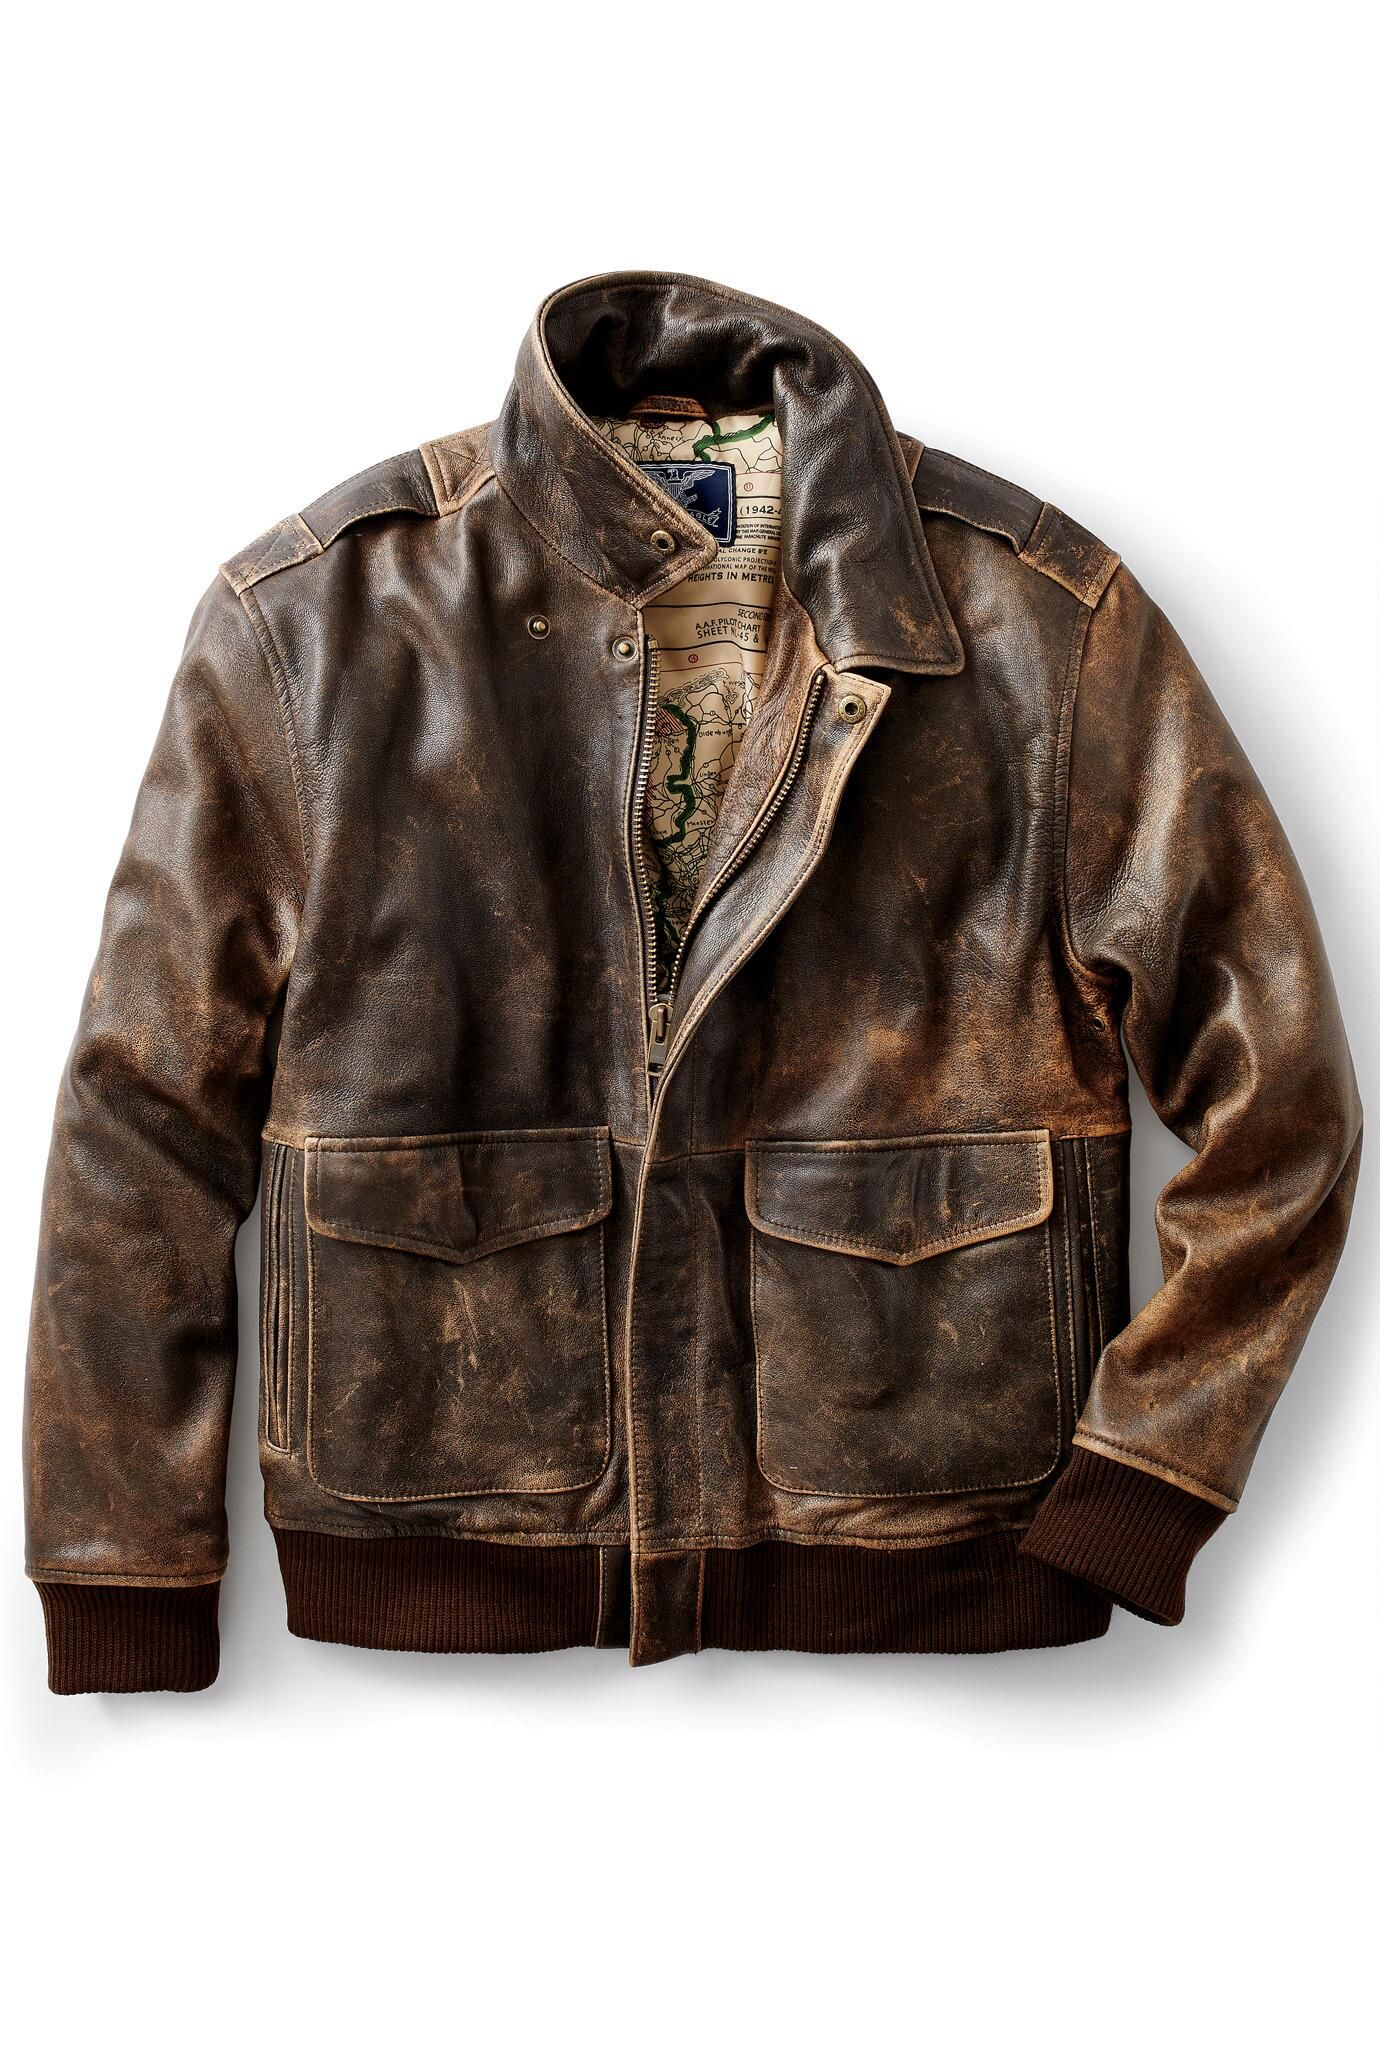 bd9cbb1f211 A-2 Blue Eagle Leather Bomber from Cockpit®  Exceptional Casual Clothing  for Men   Women from  TerritoryAhead  350.00